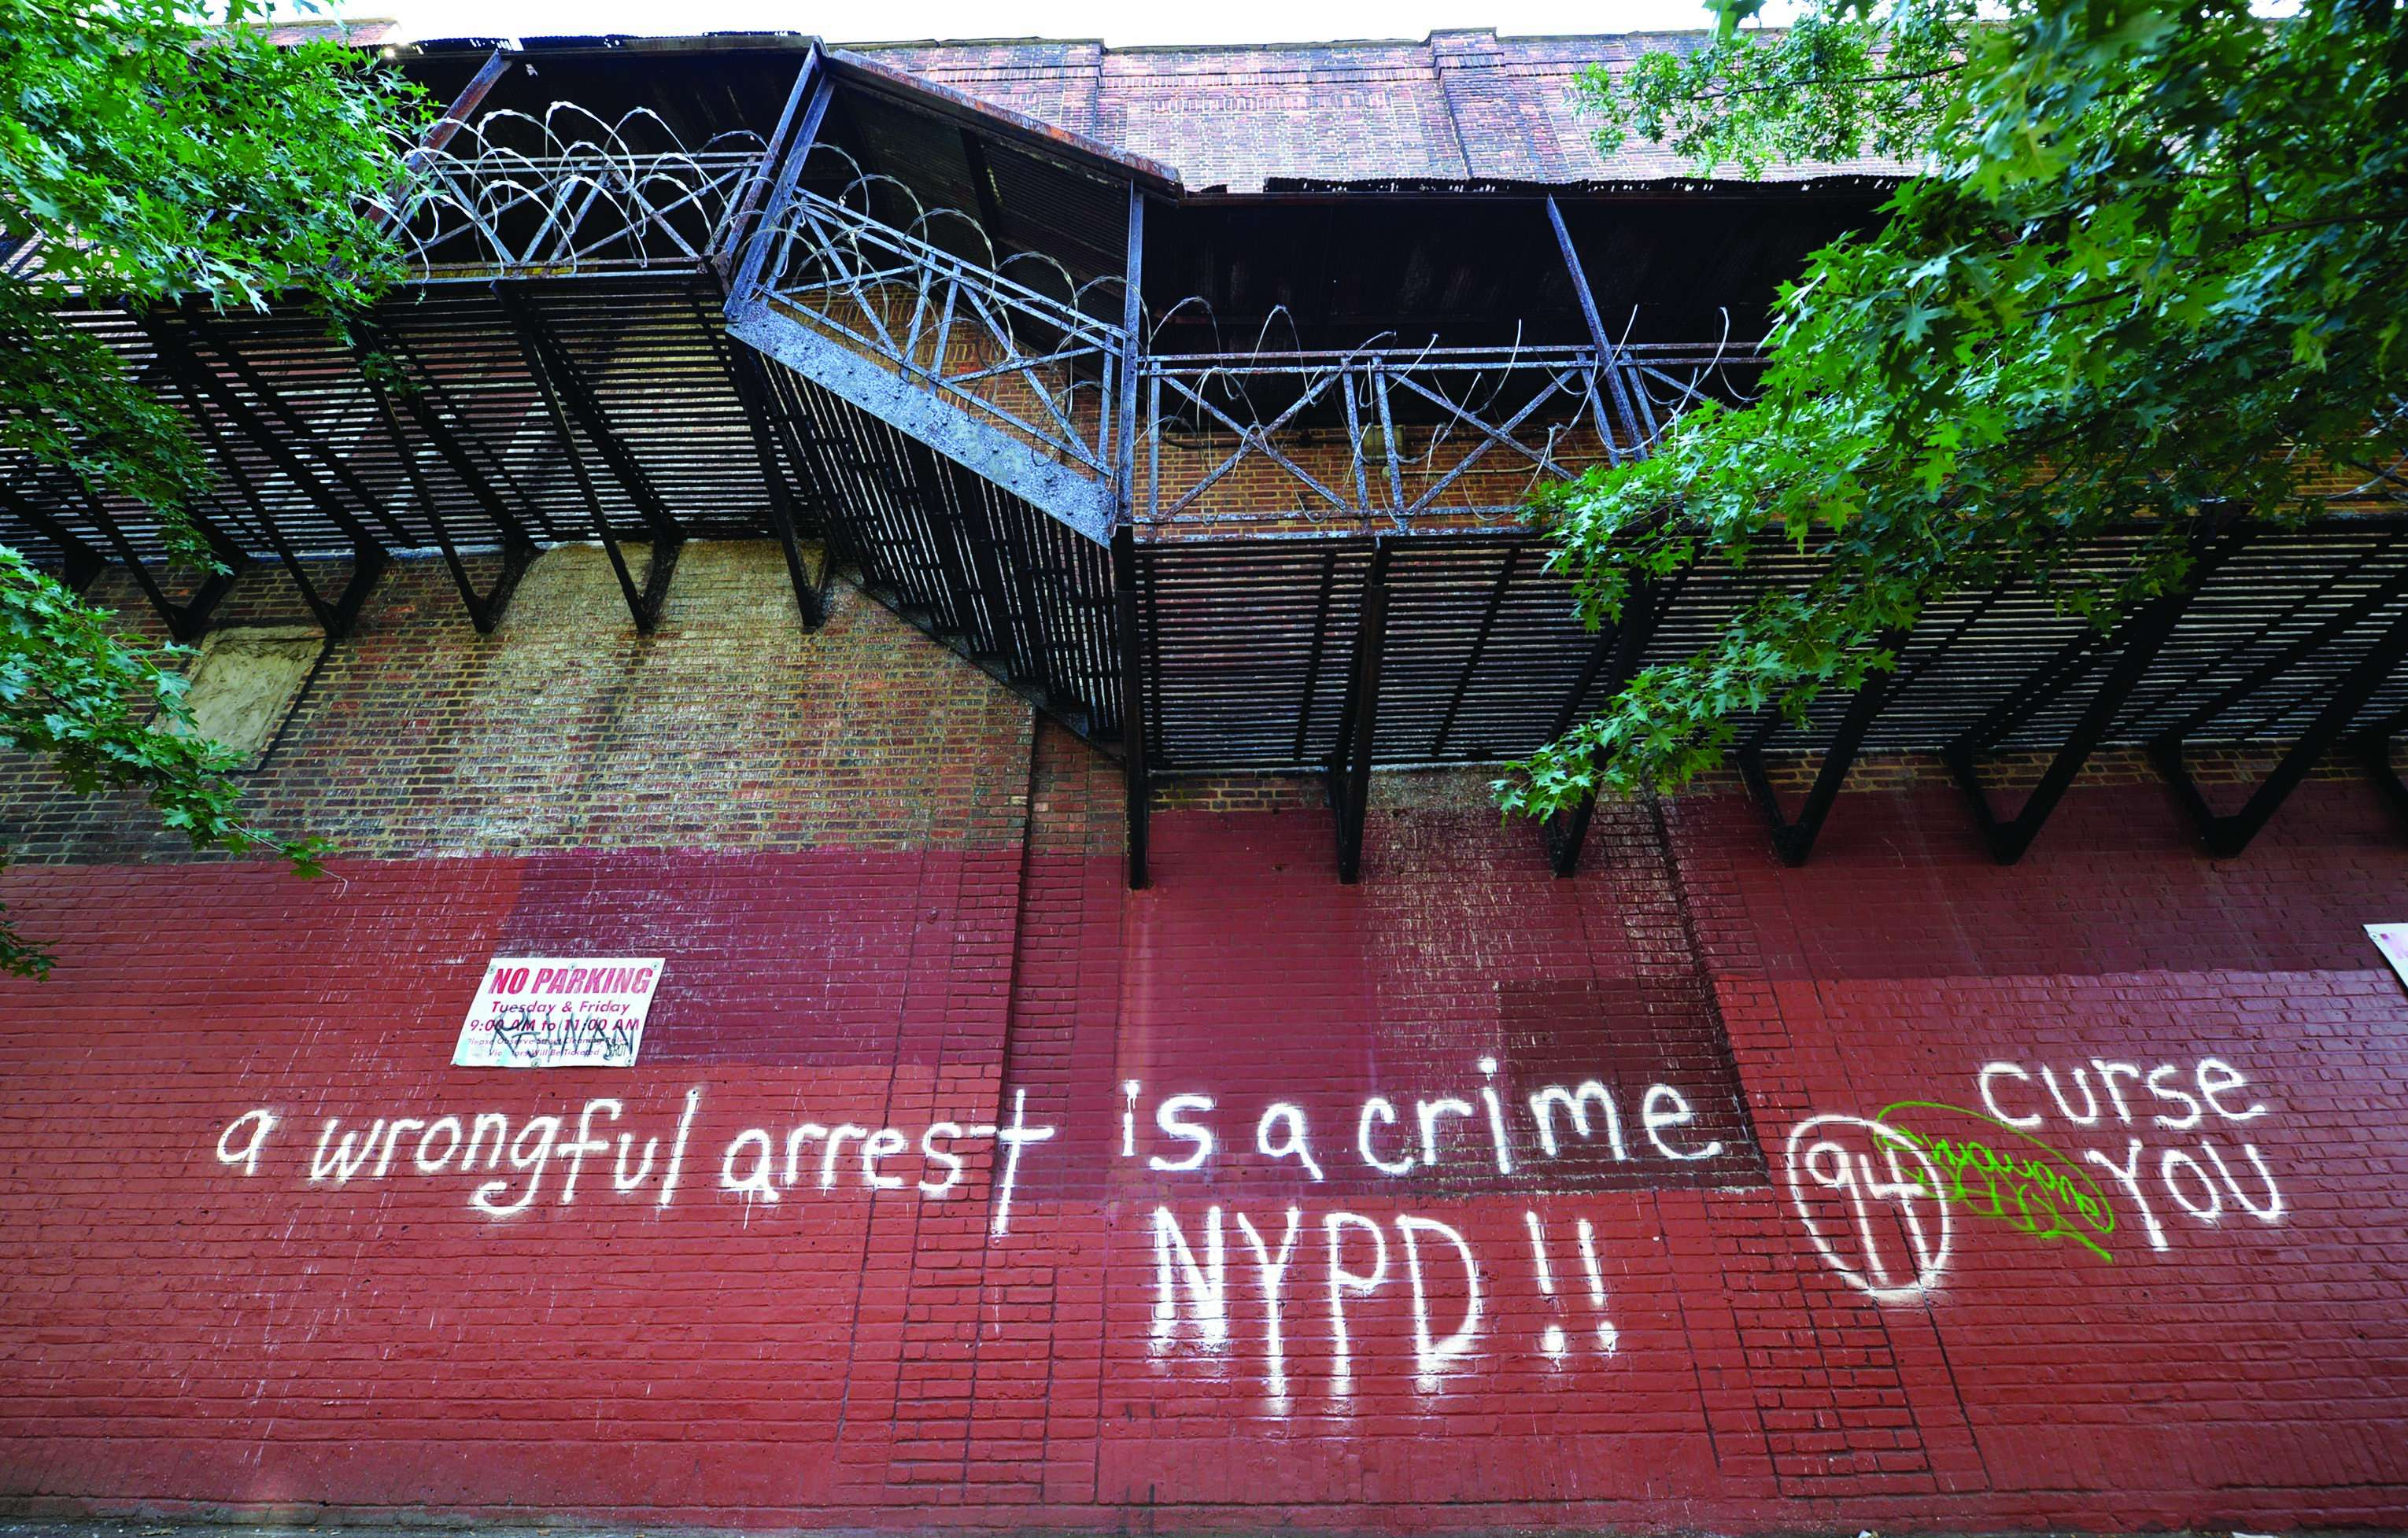 NYPD's Hate Crime task force investigates graffiti as a possible hate crime, August 2014